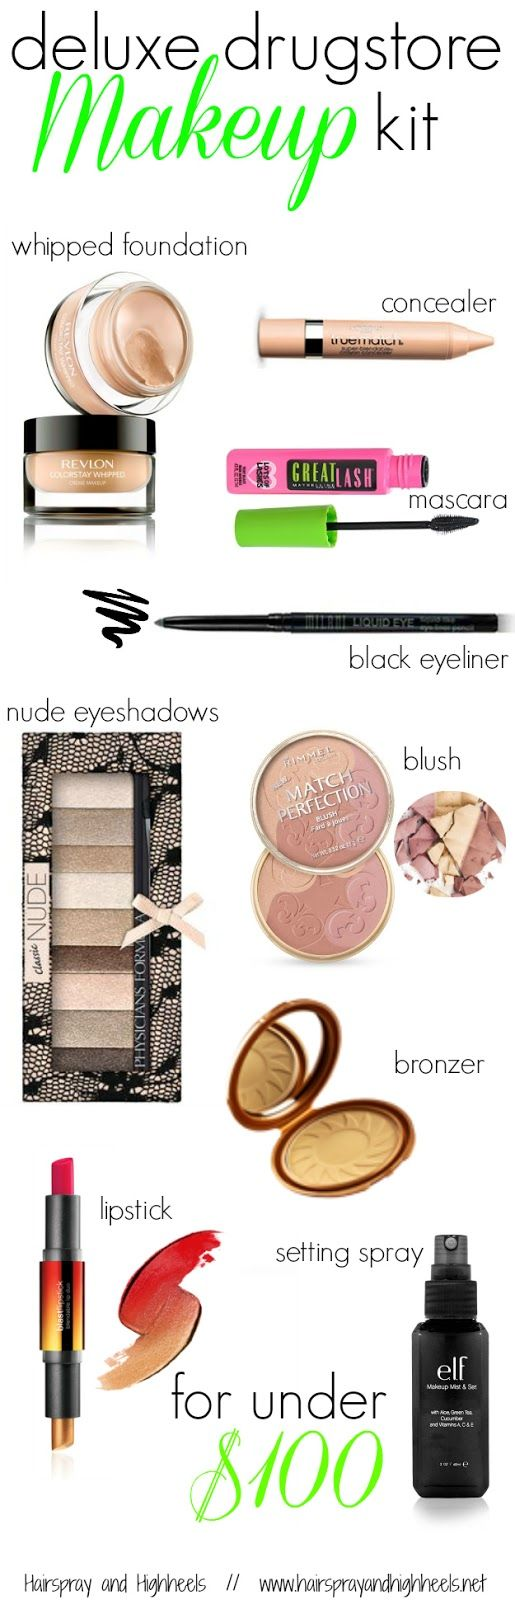 """Hairspray and High Heels: """"A Jersey Girl's Guide to Beauty"""": Best Drugstore Makeup Products"""